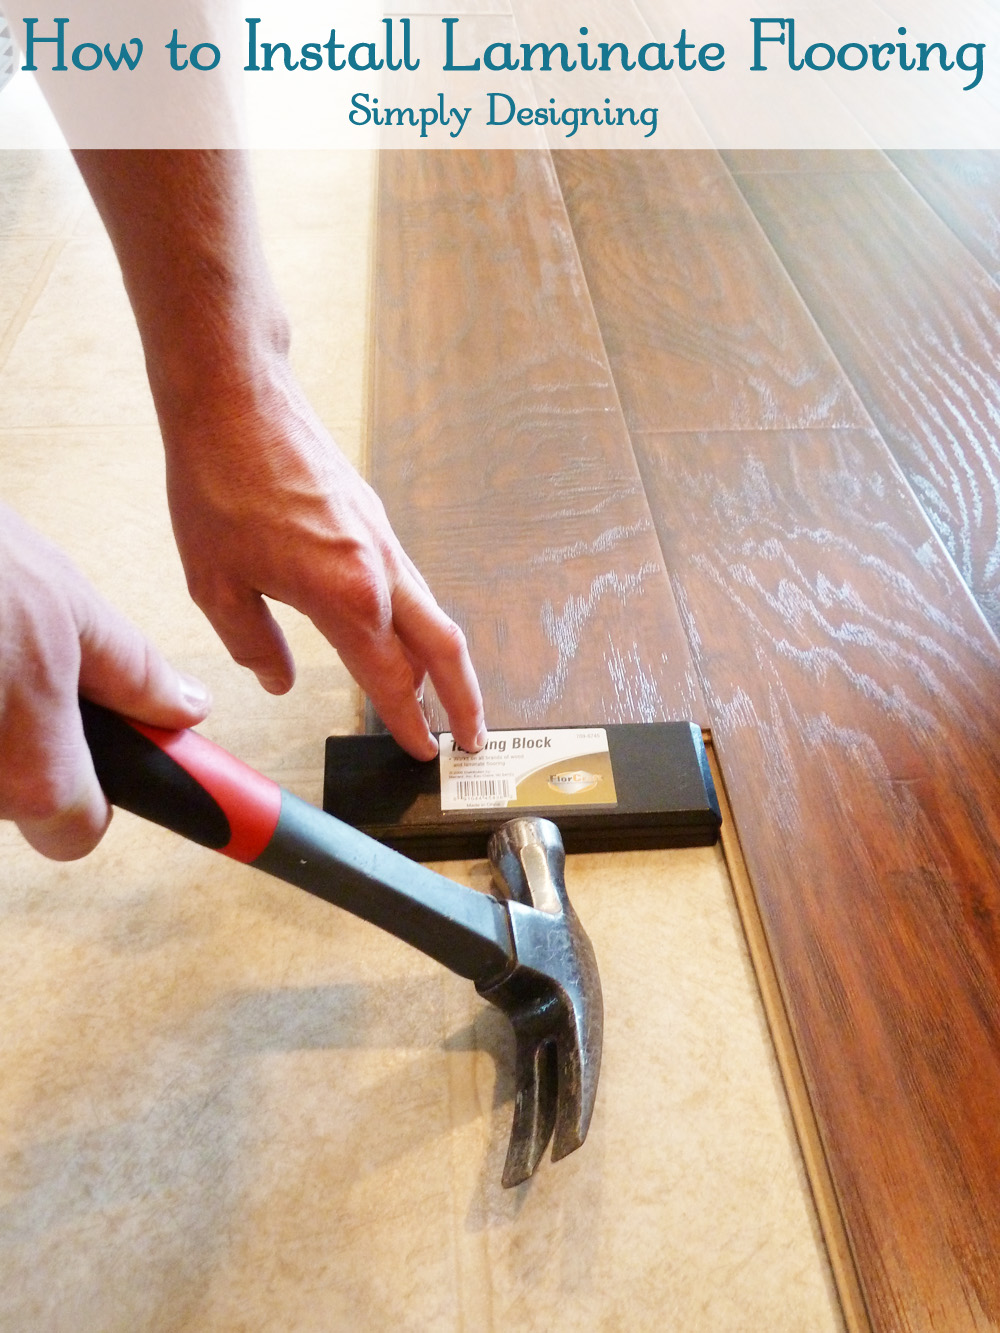 Laminate flooring what tool cuts laminate flooring for Flooring installation